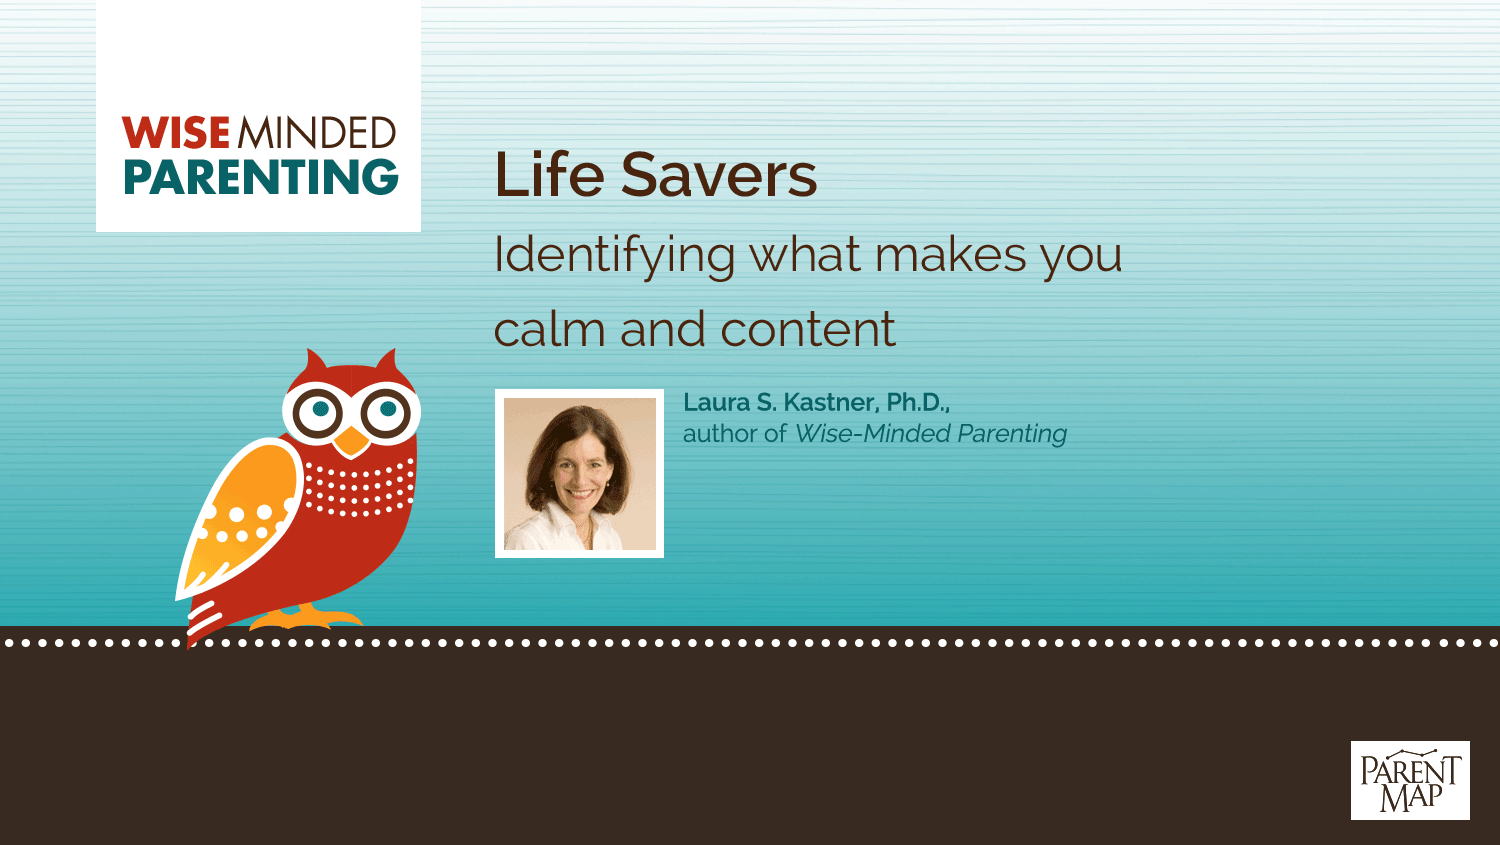 Life Savers: Identifying what makes you calm and content